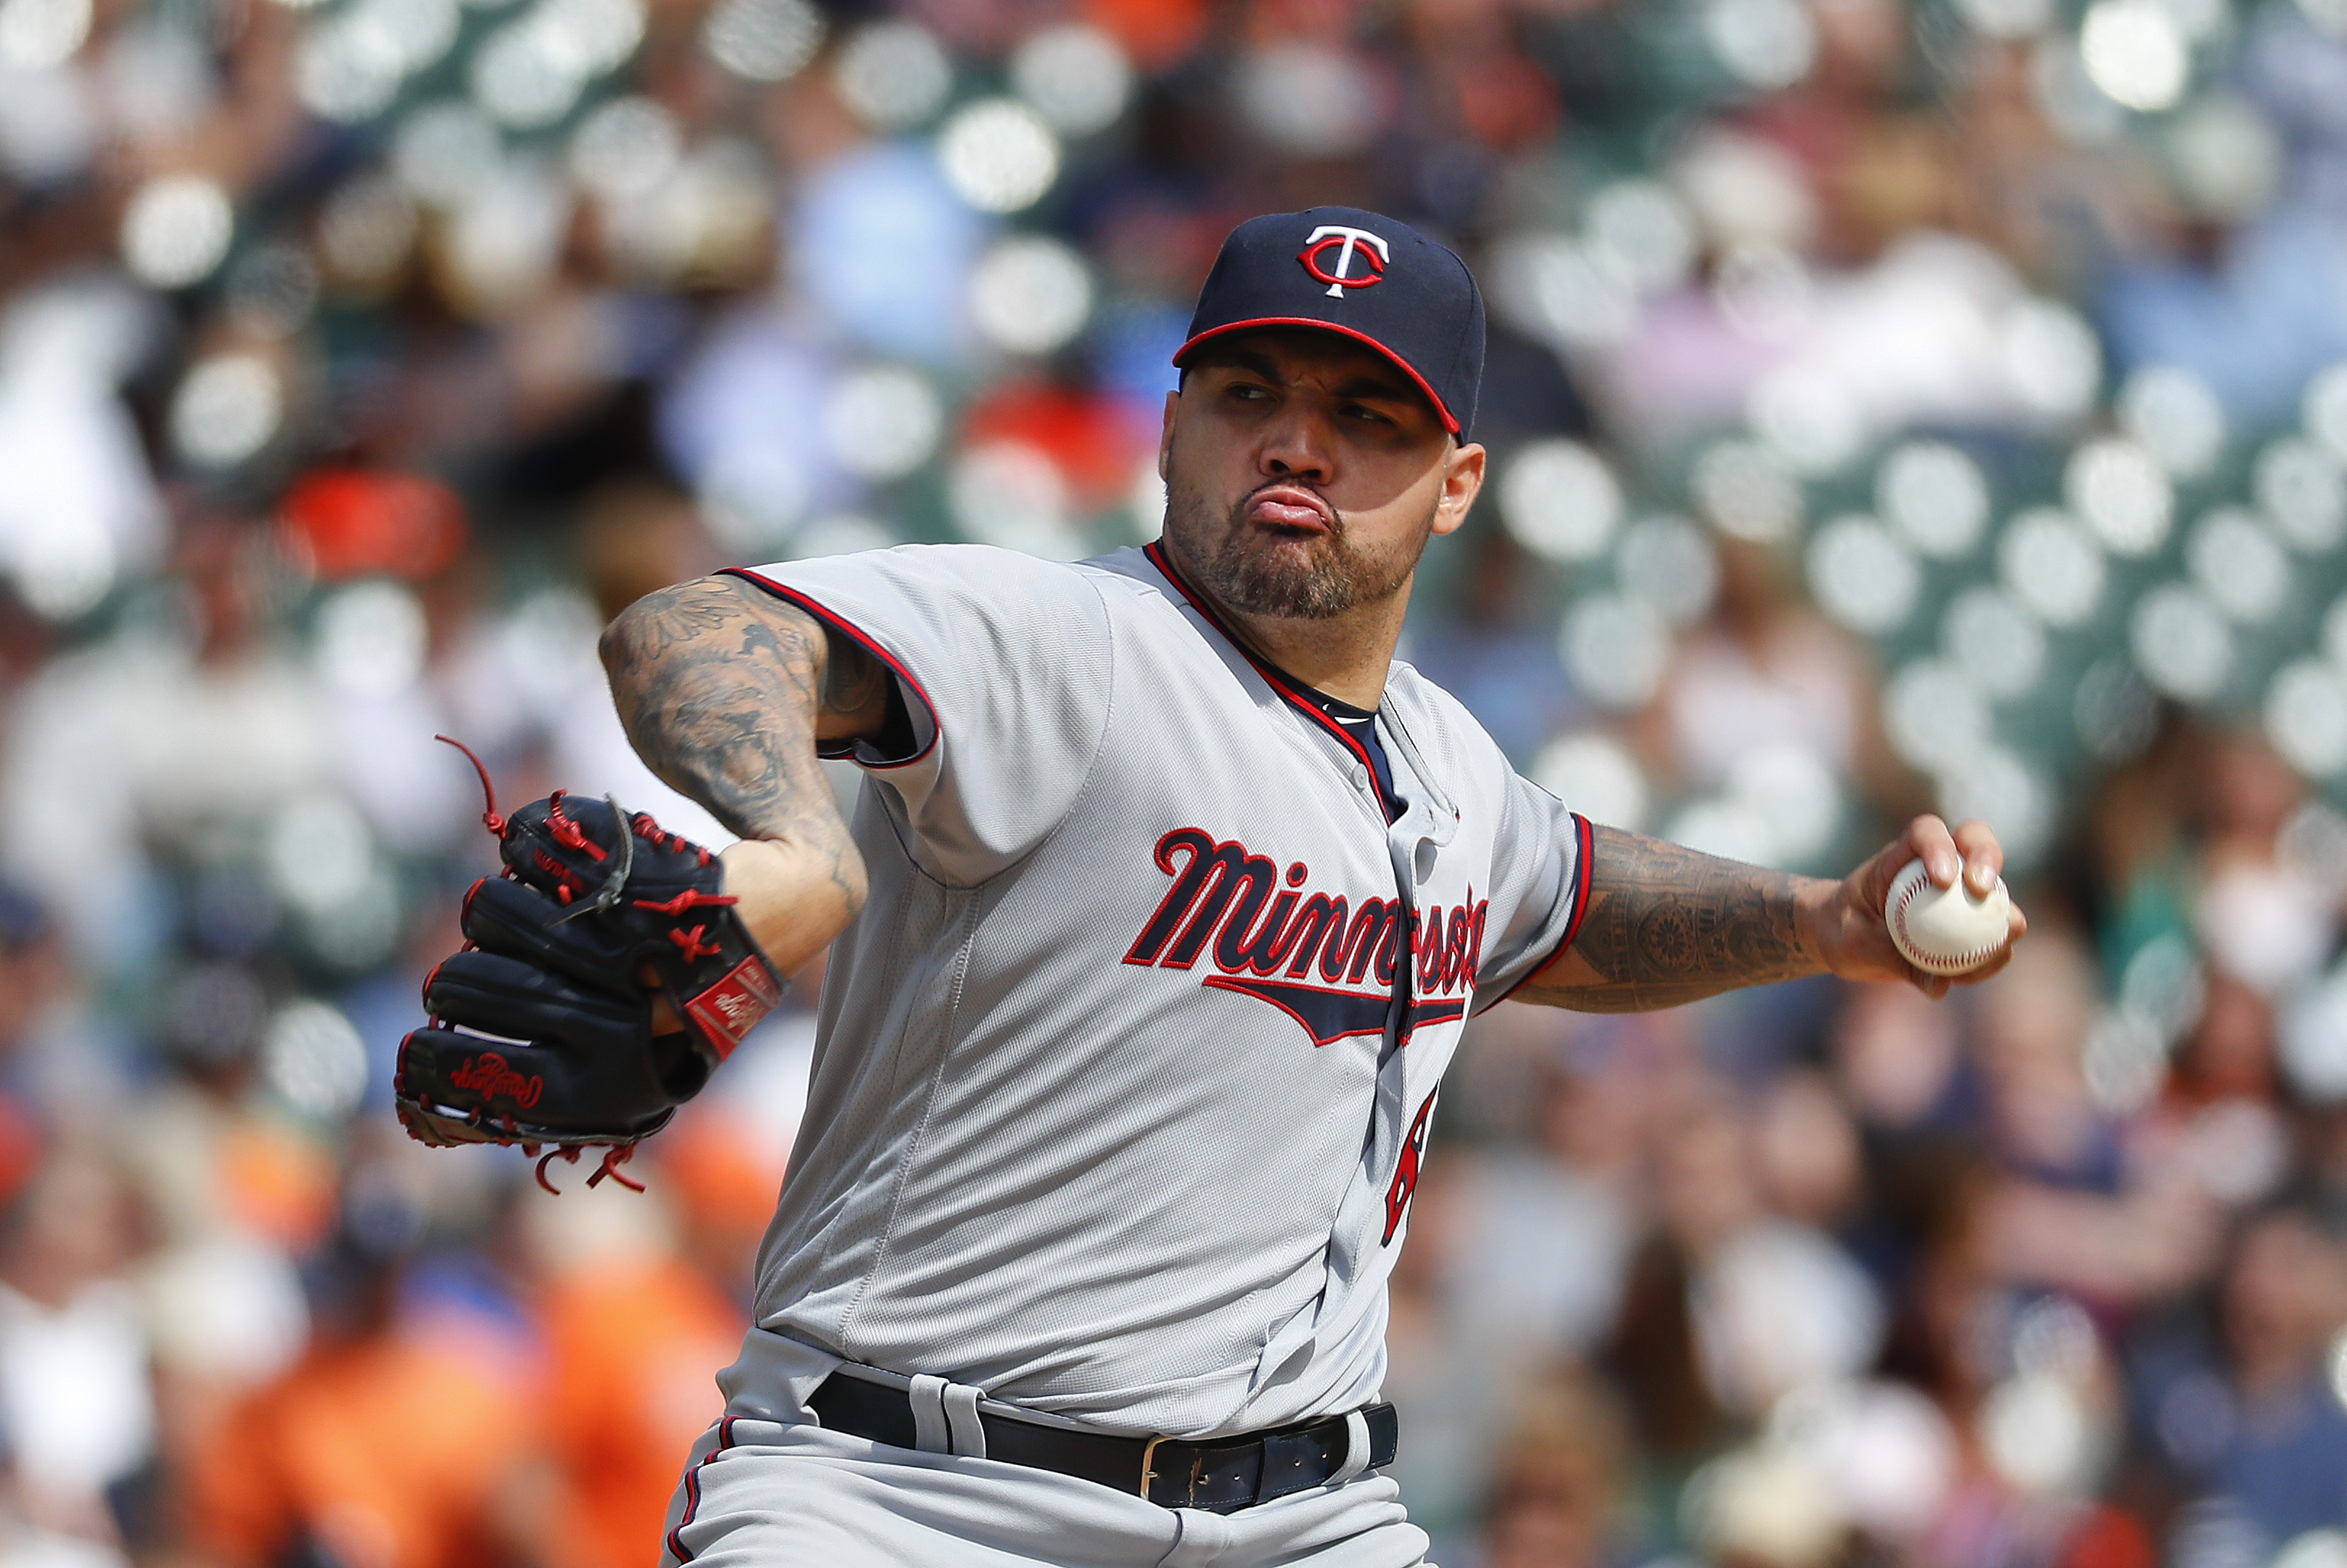 Minnesota Twins pitcher Hector Santiago throws against the Detroit Tigers in the fifth inning of a baseball game in Detroit, Thursday, Sept. 15, 2016. (AP Photo/Paul Sancya)